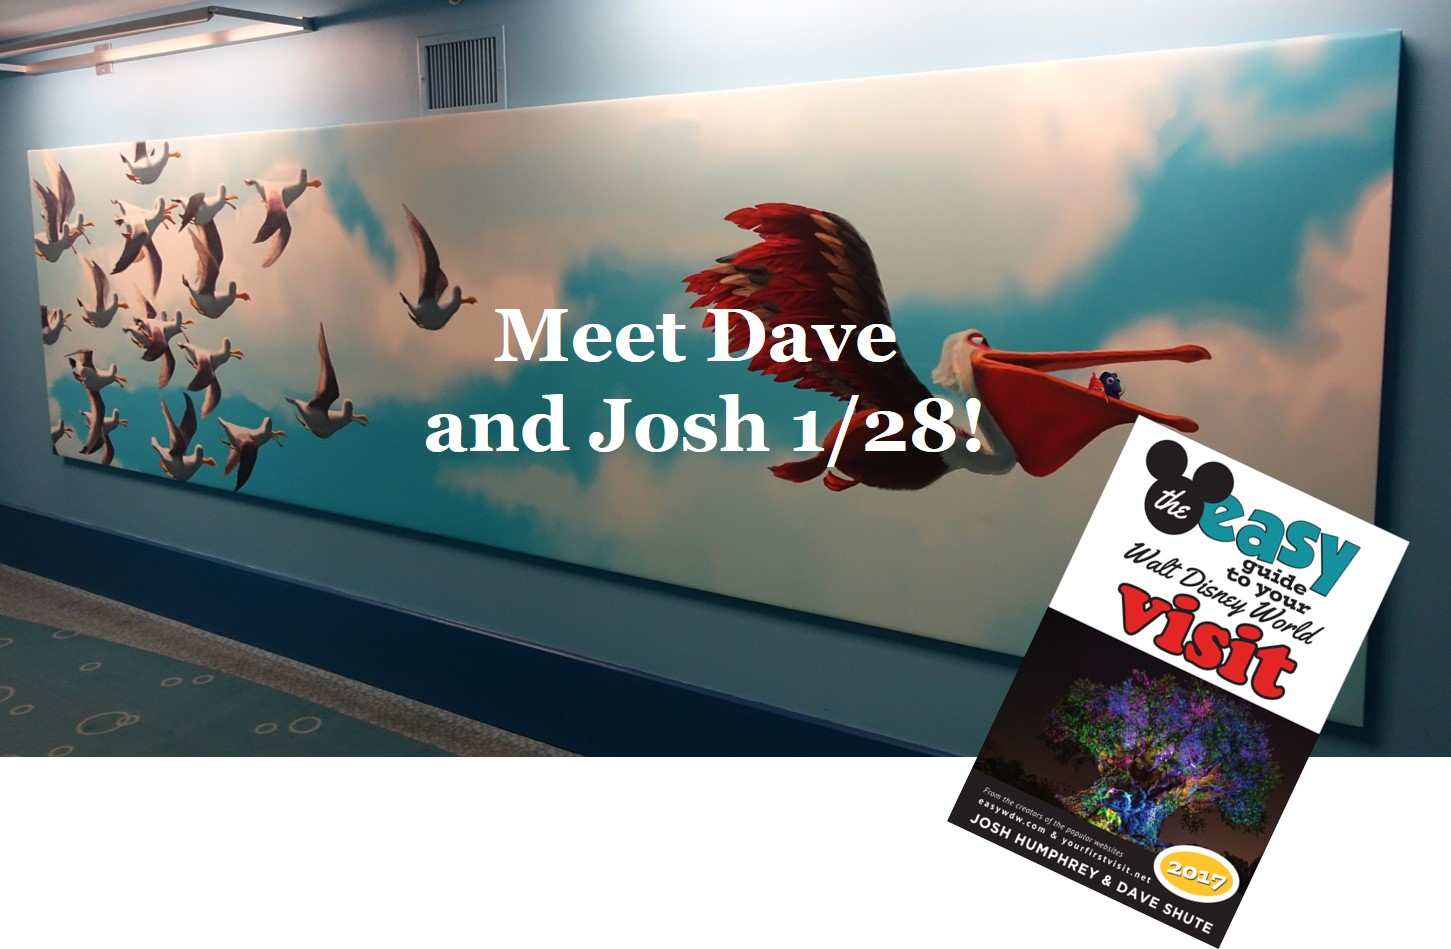 Meet Dave and Josh 1-28 at Epcot at 1p